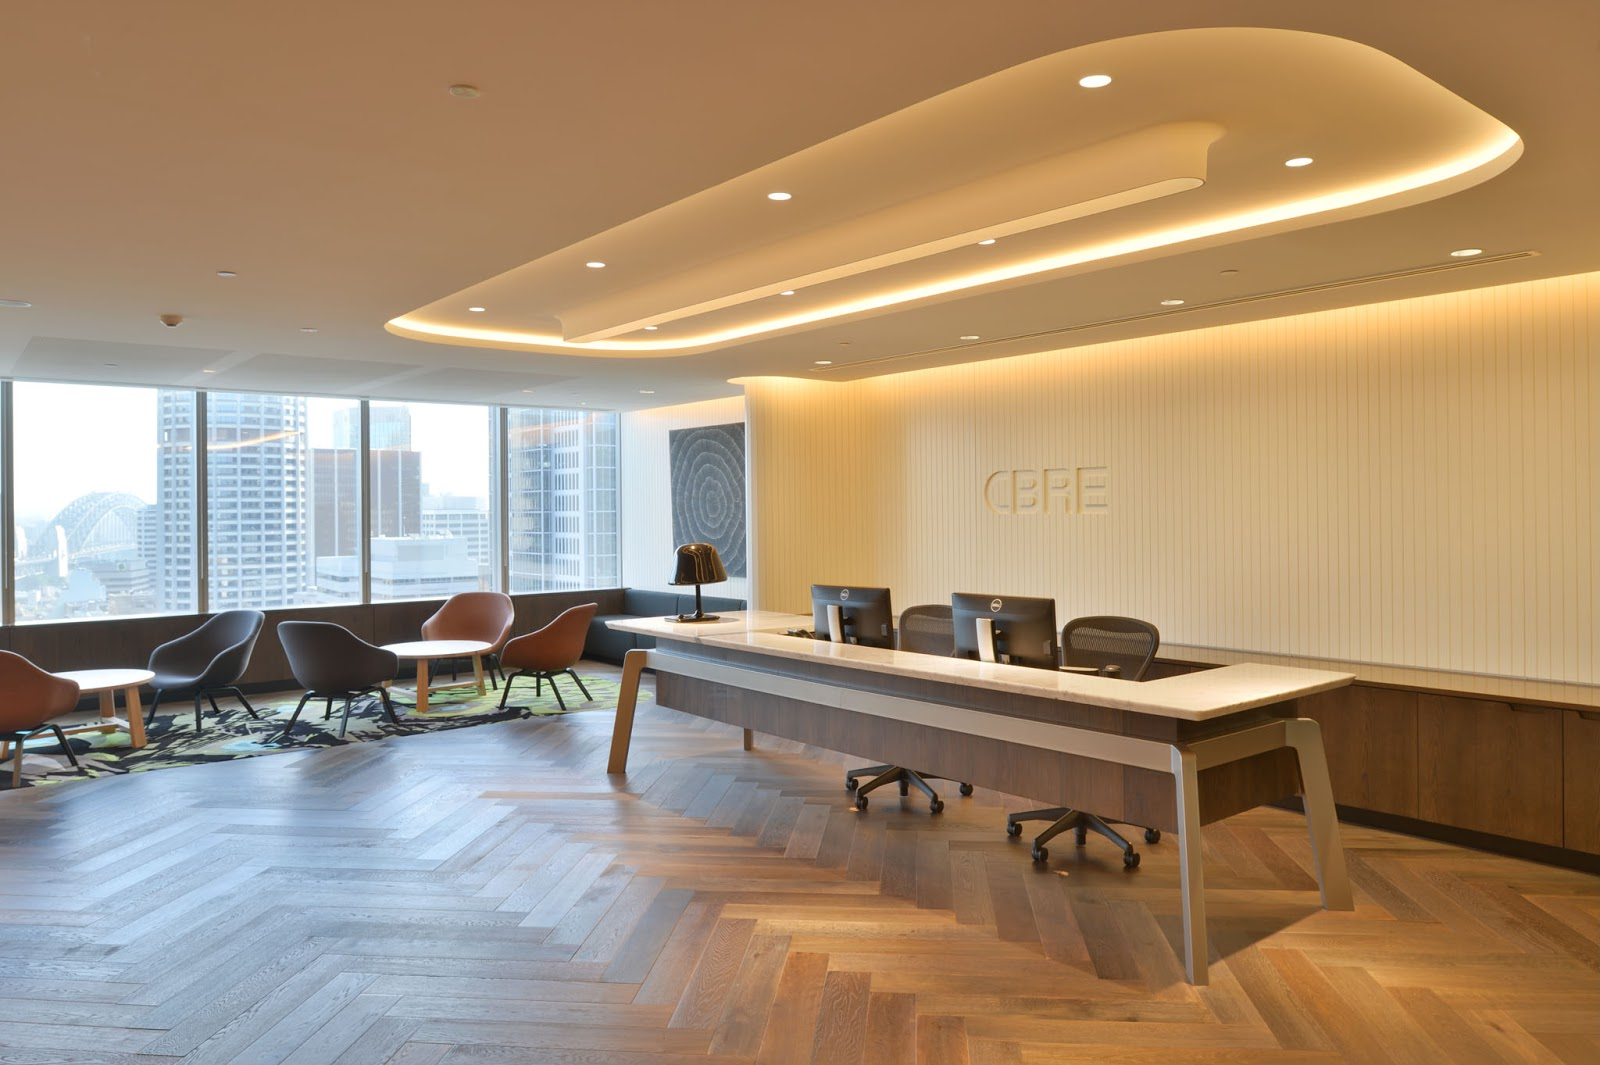 CBRE-Suply-Install-Luxury-Quality-Engineered-Floor-Boards-Parquet-Otta-Tingue-N-Groove-Blog-Design-Style-Industrial-Residential-Commercial